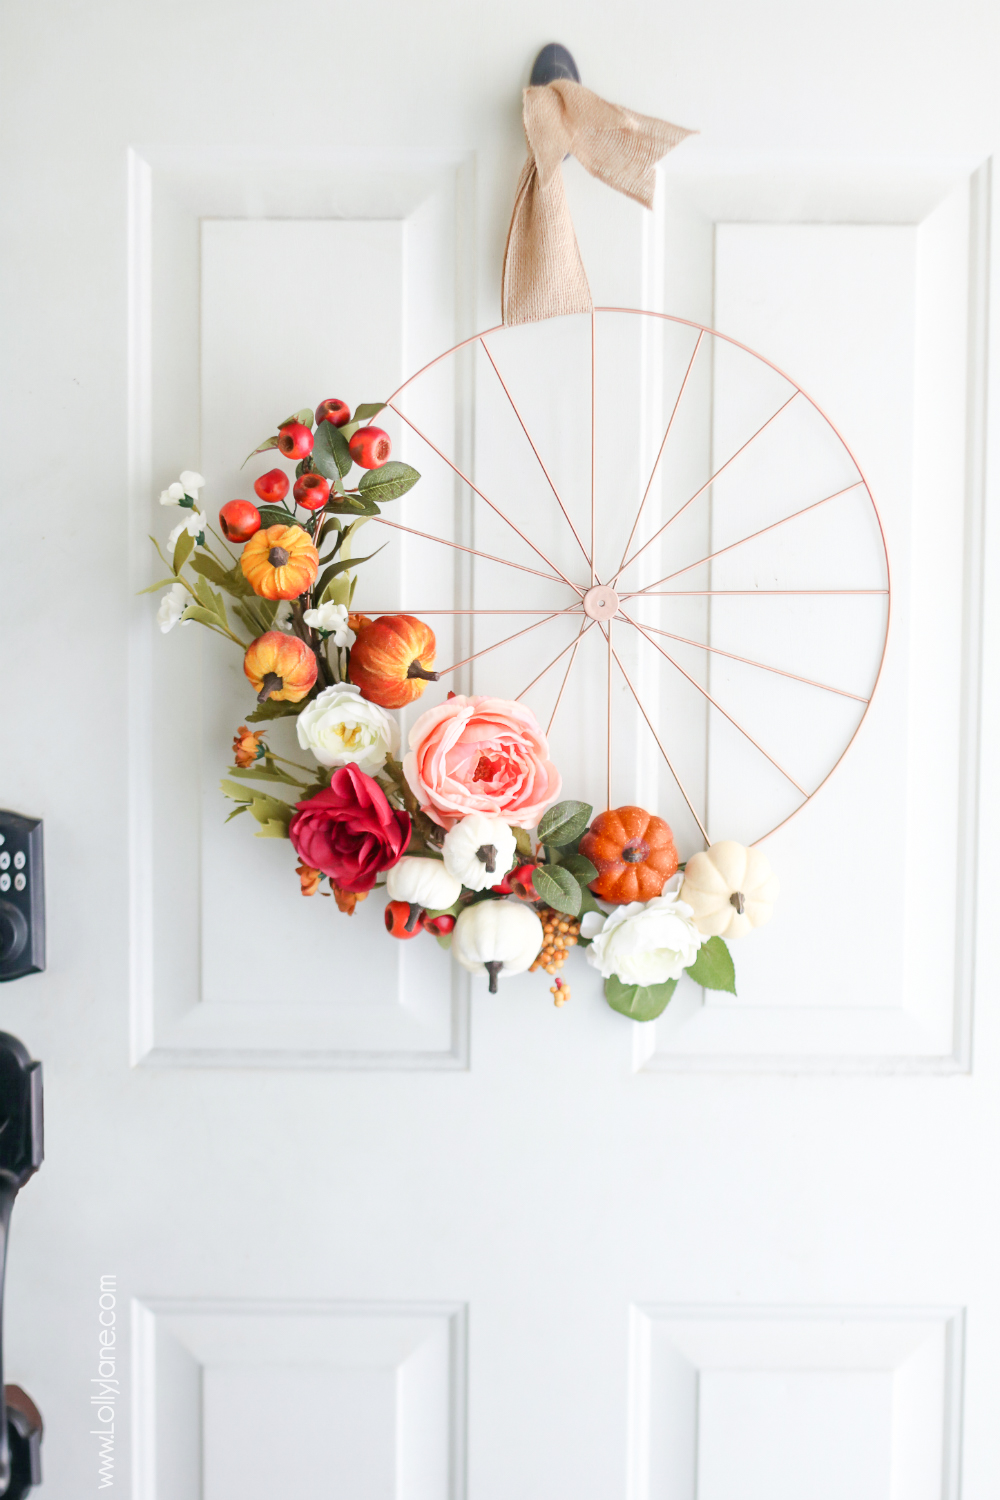 Love this EASY Fall Wheel Wreath! Grab a bicycle rim and spruce it up with fall accessories, love it! #fallwreath #autumndecor #fall #autumn #diy #fallwreaths #diyfallwreaths #fallwreathideas #falldoorwreaths #diy #falldecor #homedecor #fallhomedecor